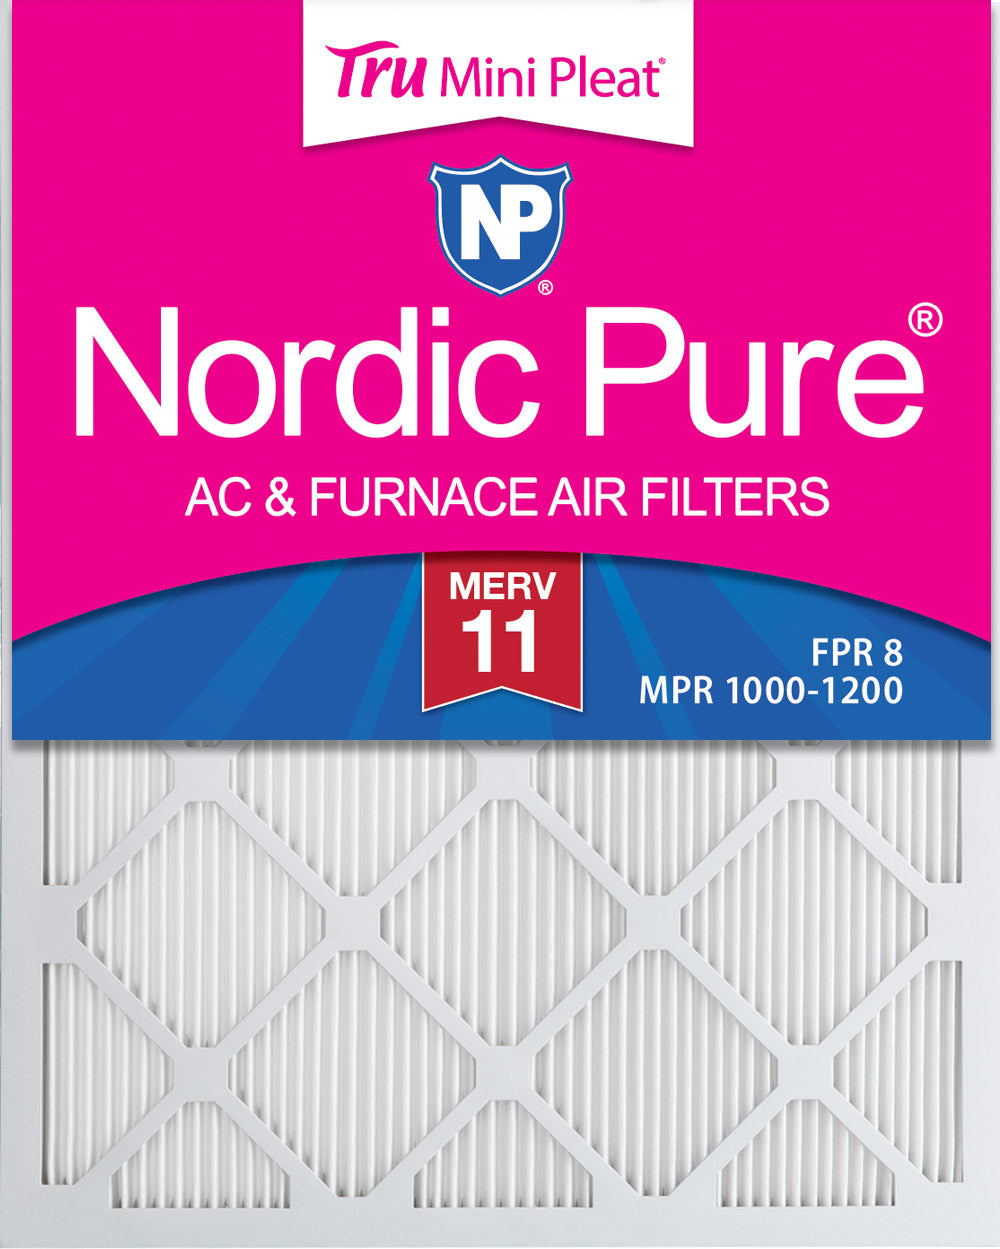 14x20x1 Tru Mini Pleat MERV 11 AC Furnace Air Filters 6 Pack